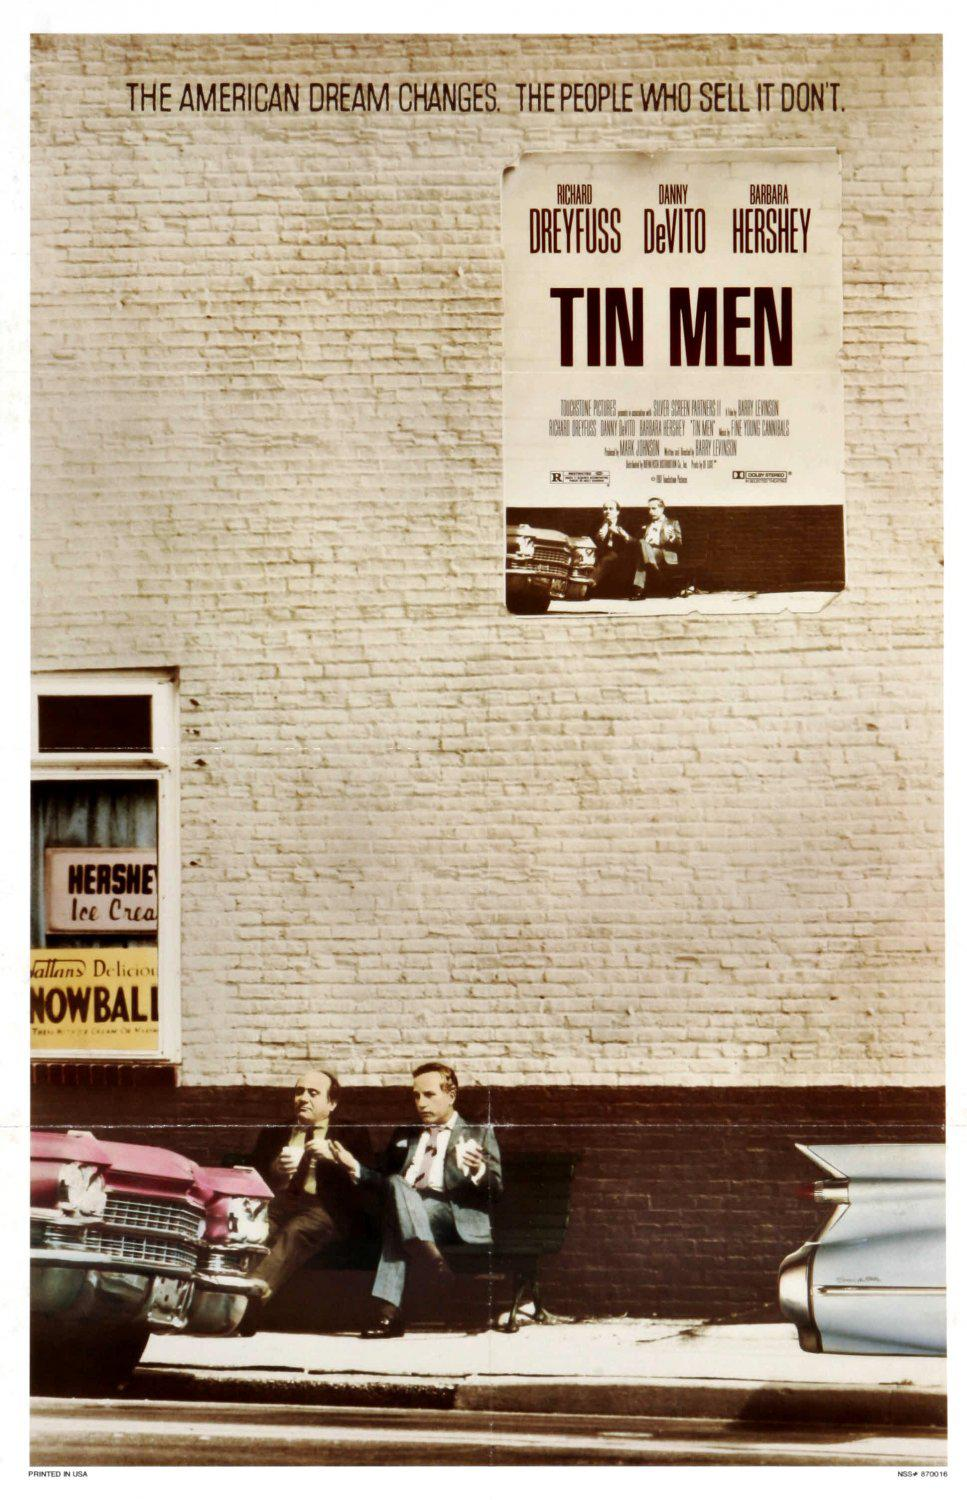 Tin Men 2 imbroglioni con Signora - the American Dream changes, the People who sell it don't - Richard Dreyfuss - Danny DeVito - Barbara Hershey